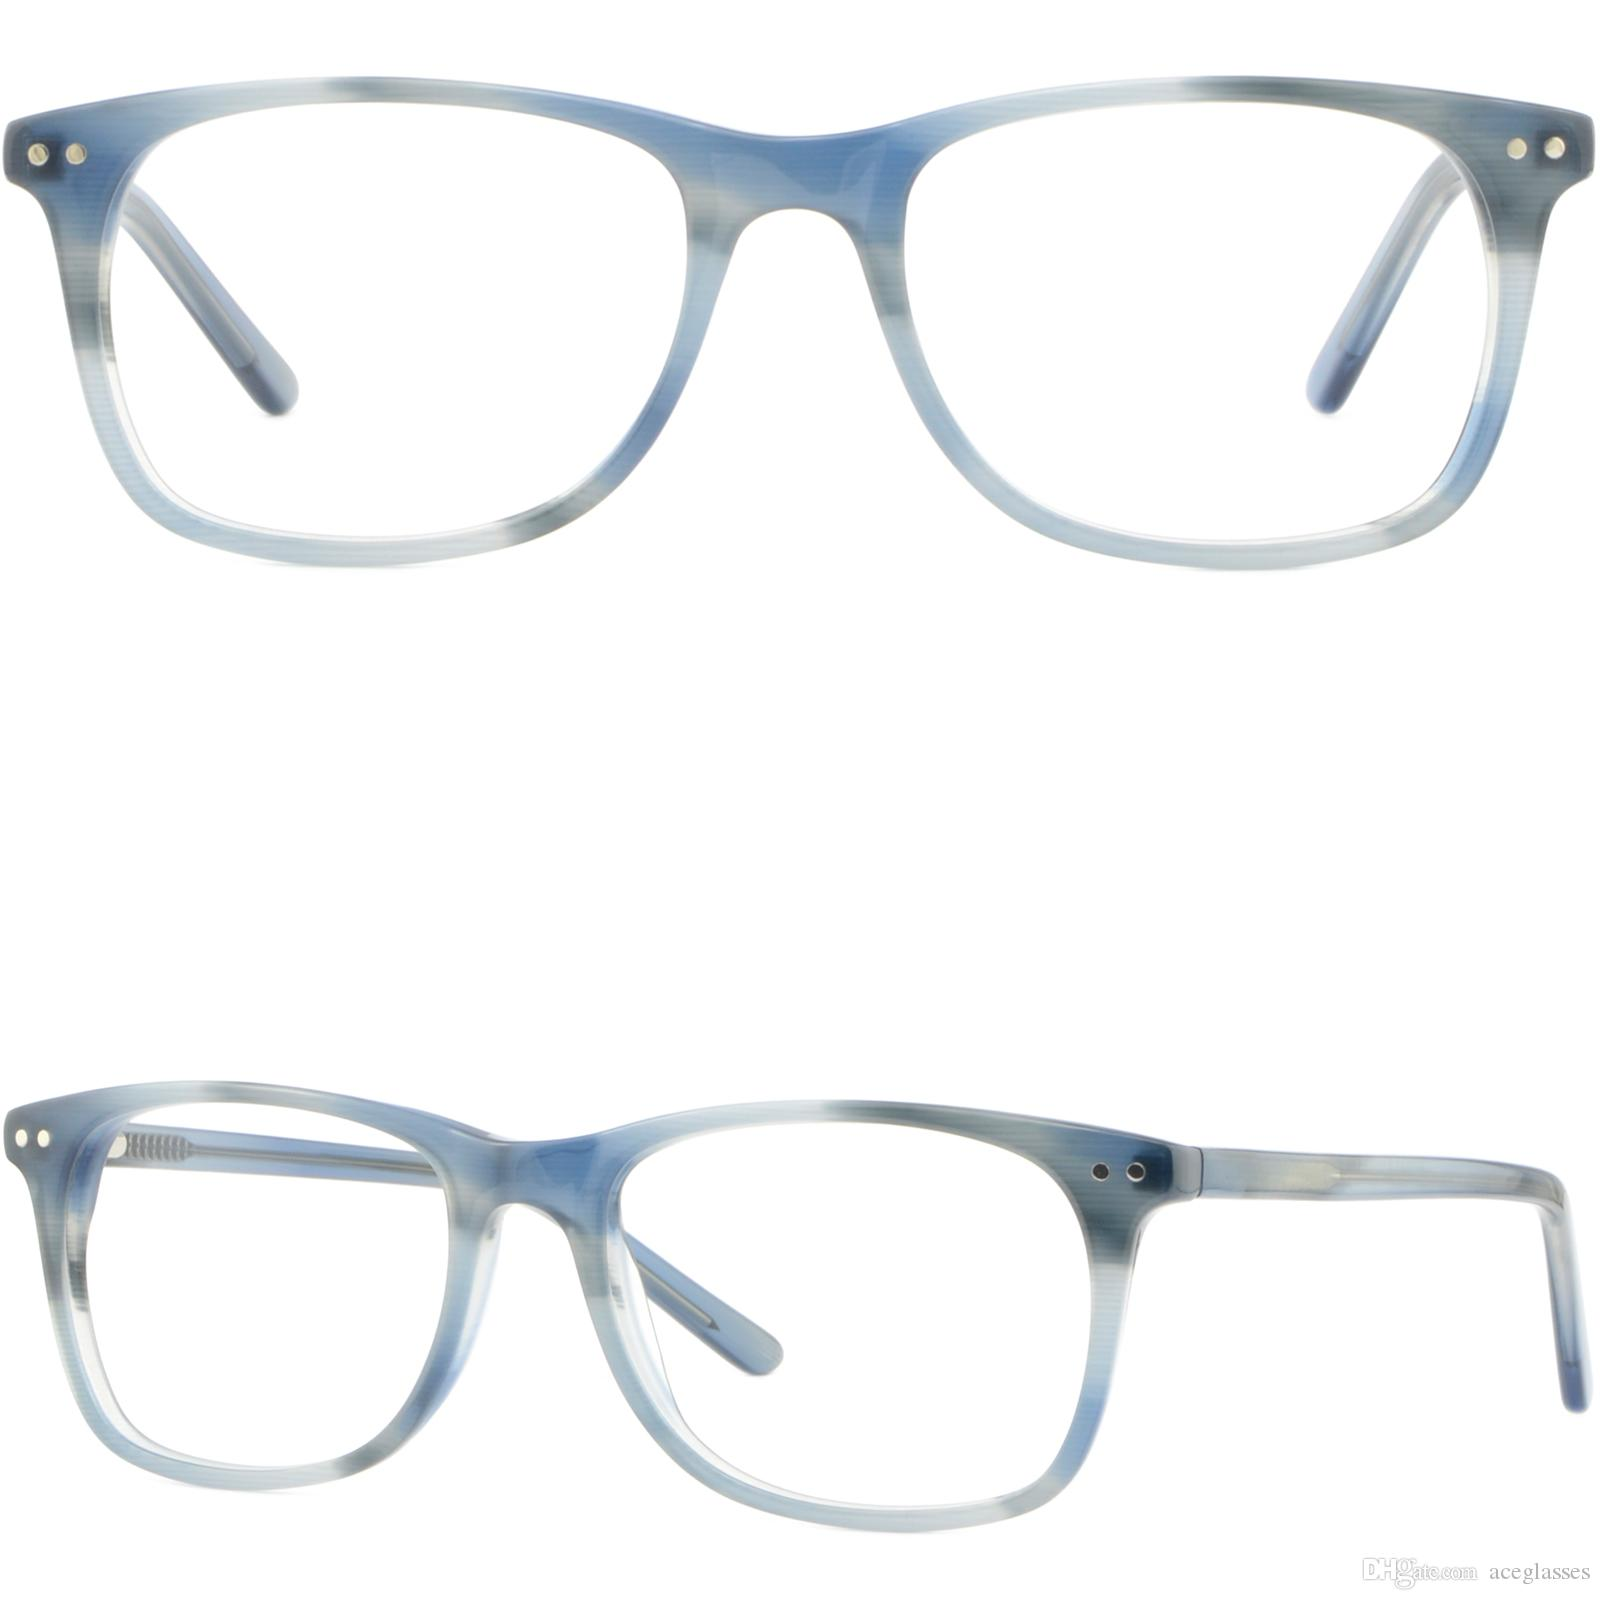 200baf55a54 Rectangular Mens Womens Plastic Frame Glasses Eyeglass Silver Dots Spring  Hinges Eyeglass Frames For Women Glasses Frames For Men From Aceglasses